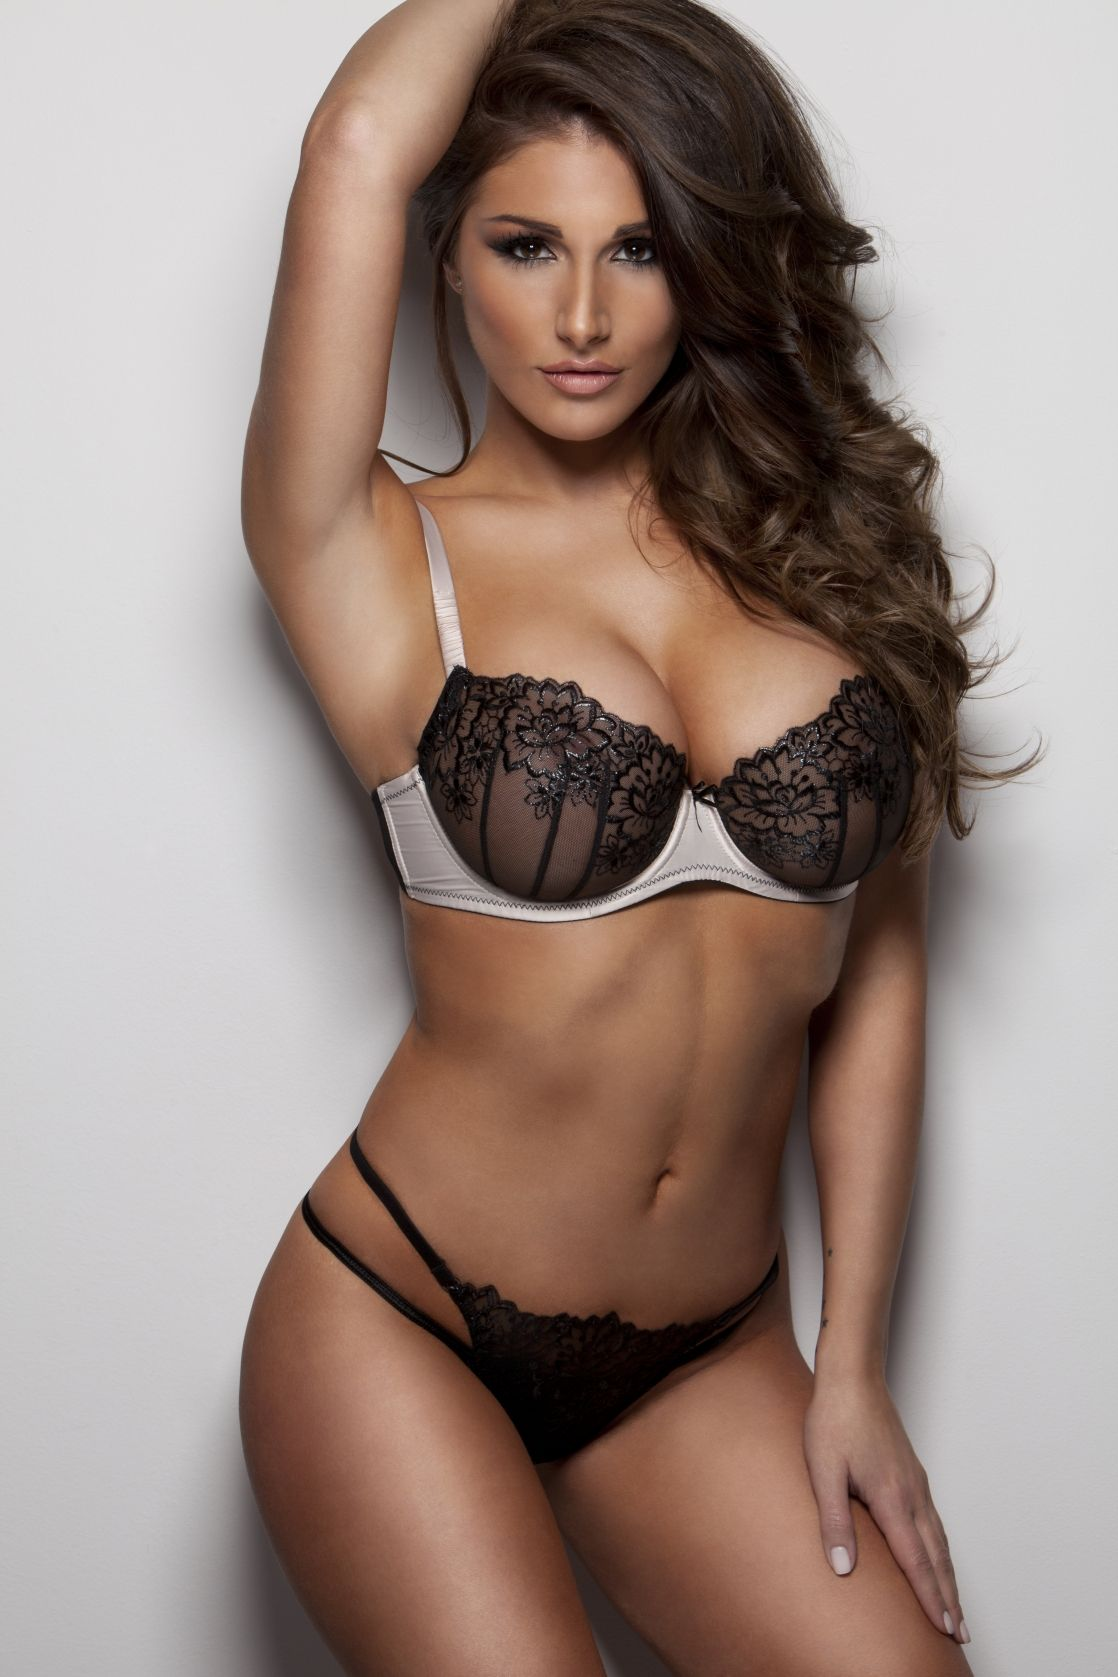 Cleavage Lucy Pinder nudes (89 photo), Topless, Is a cute, Boobs, cleavage 2015